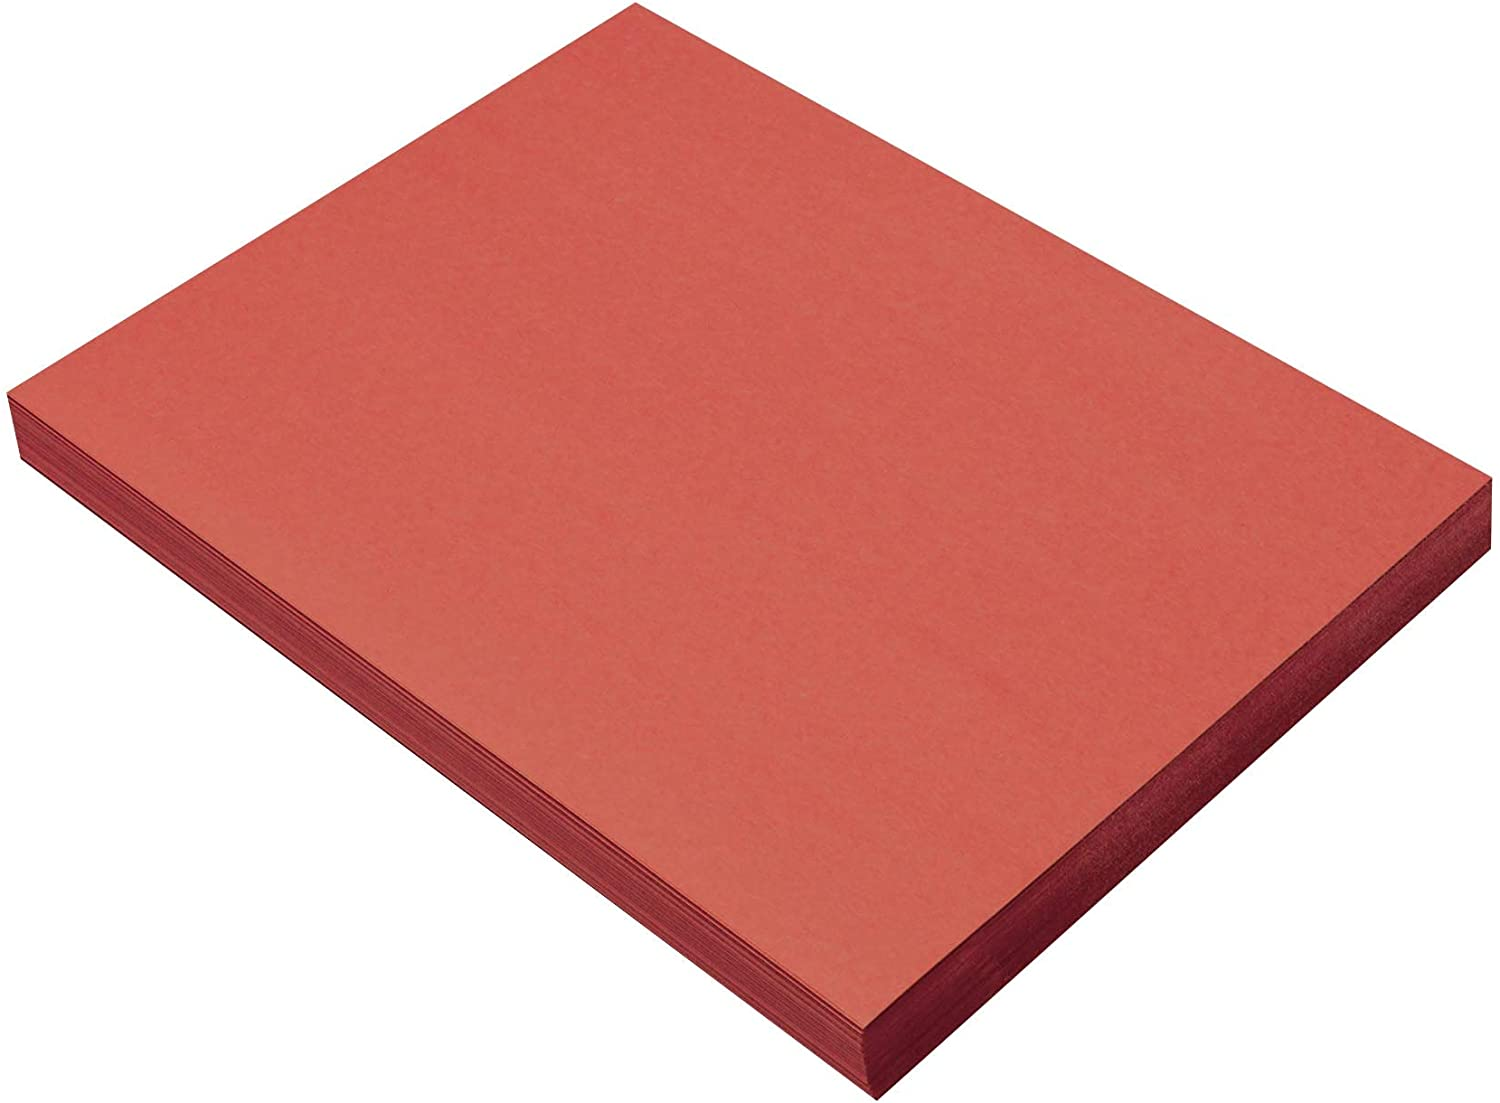 SunWorks Heavyweight Construction Paper, 9 x 12 Inches, Red, 100 Sheets